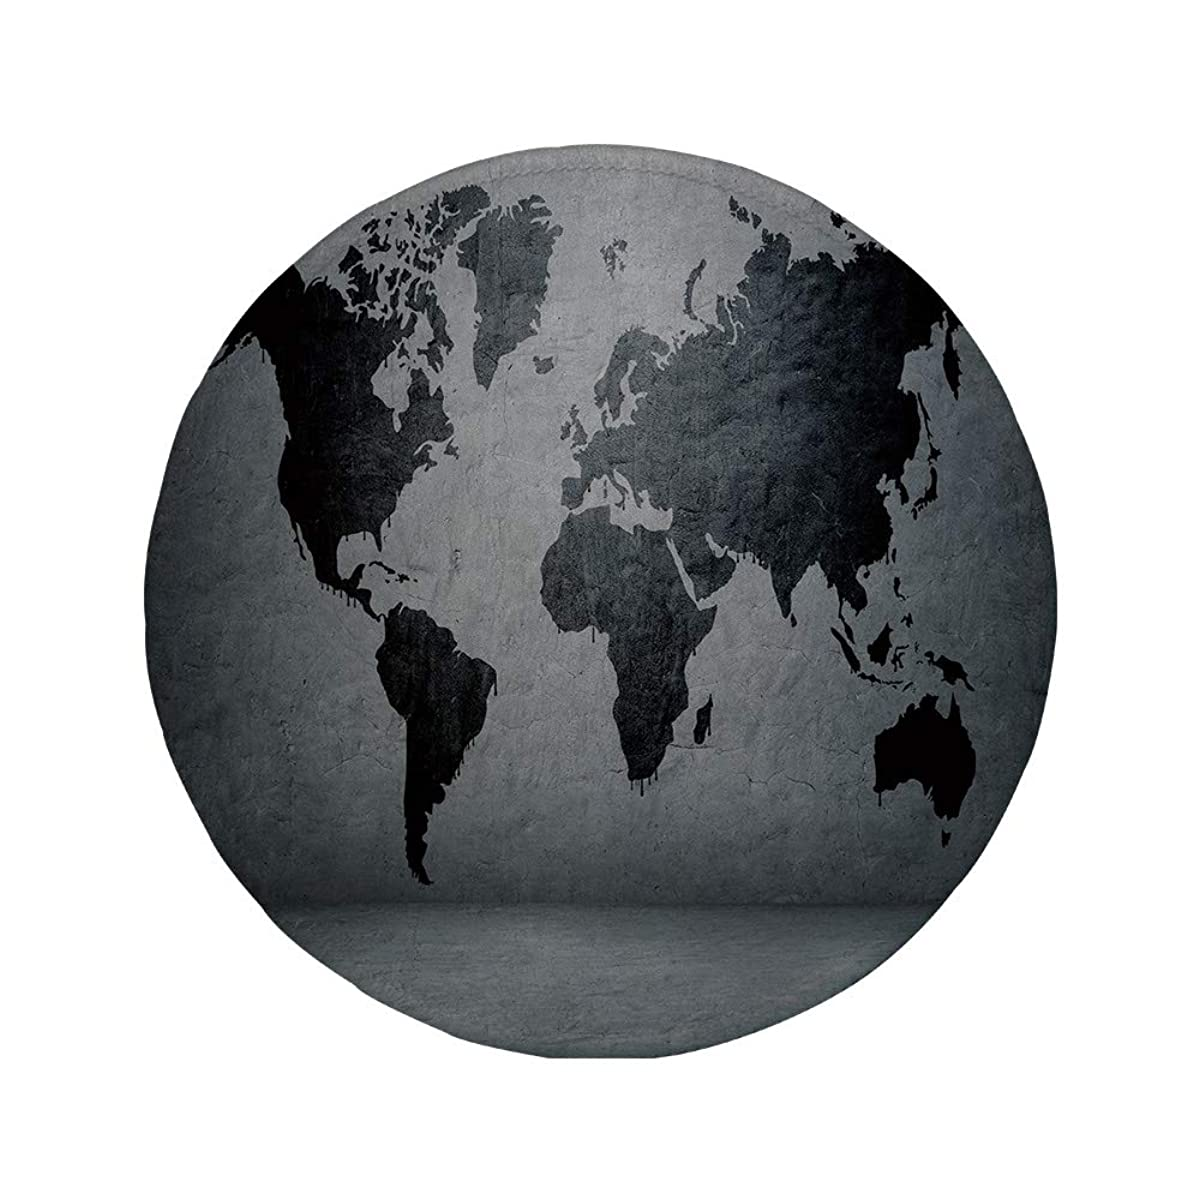 Non-Slip Rubber Round Mouse Pad,Dark Grey,Black Colored World Map on Concrete Wall Image Urban Structure Grungy Rough Look,Grey Black,11.8